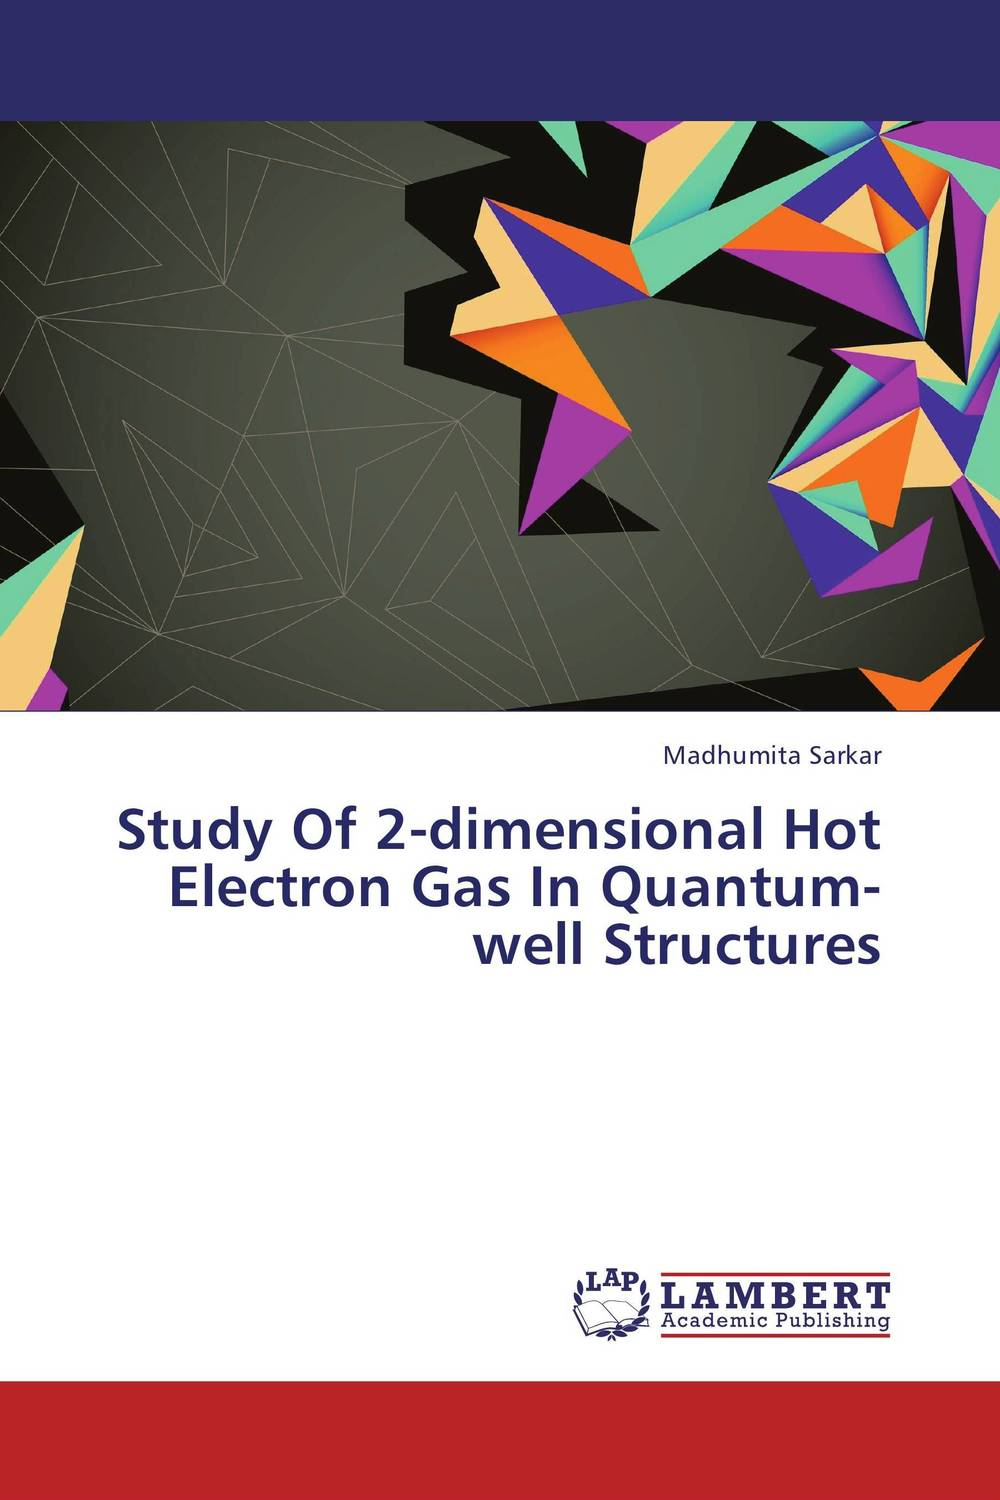 Study Of 2-dimensional Hot Electron Gas In Quantum-well Structures quantum structures